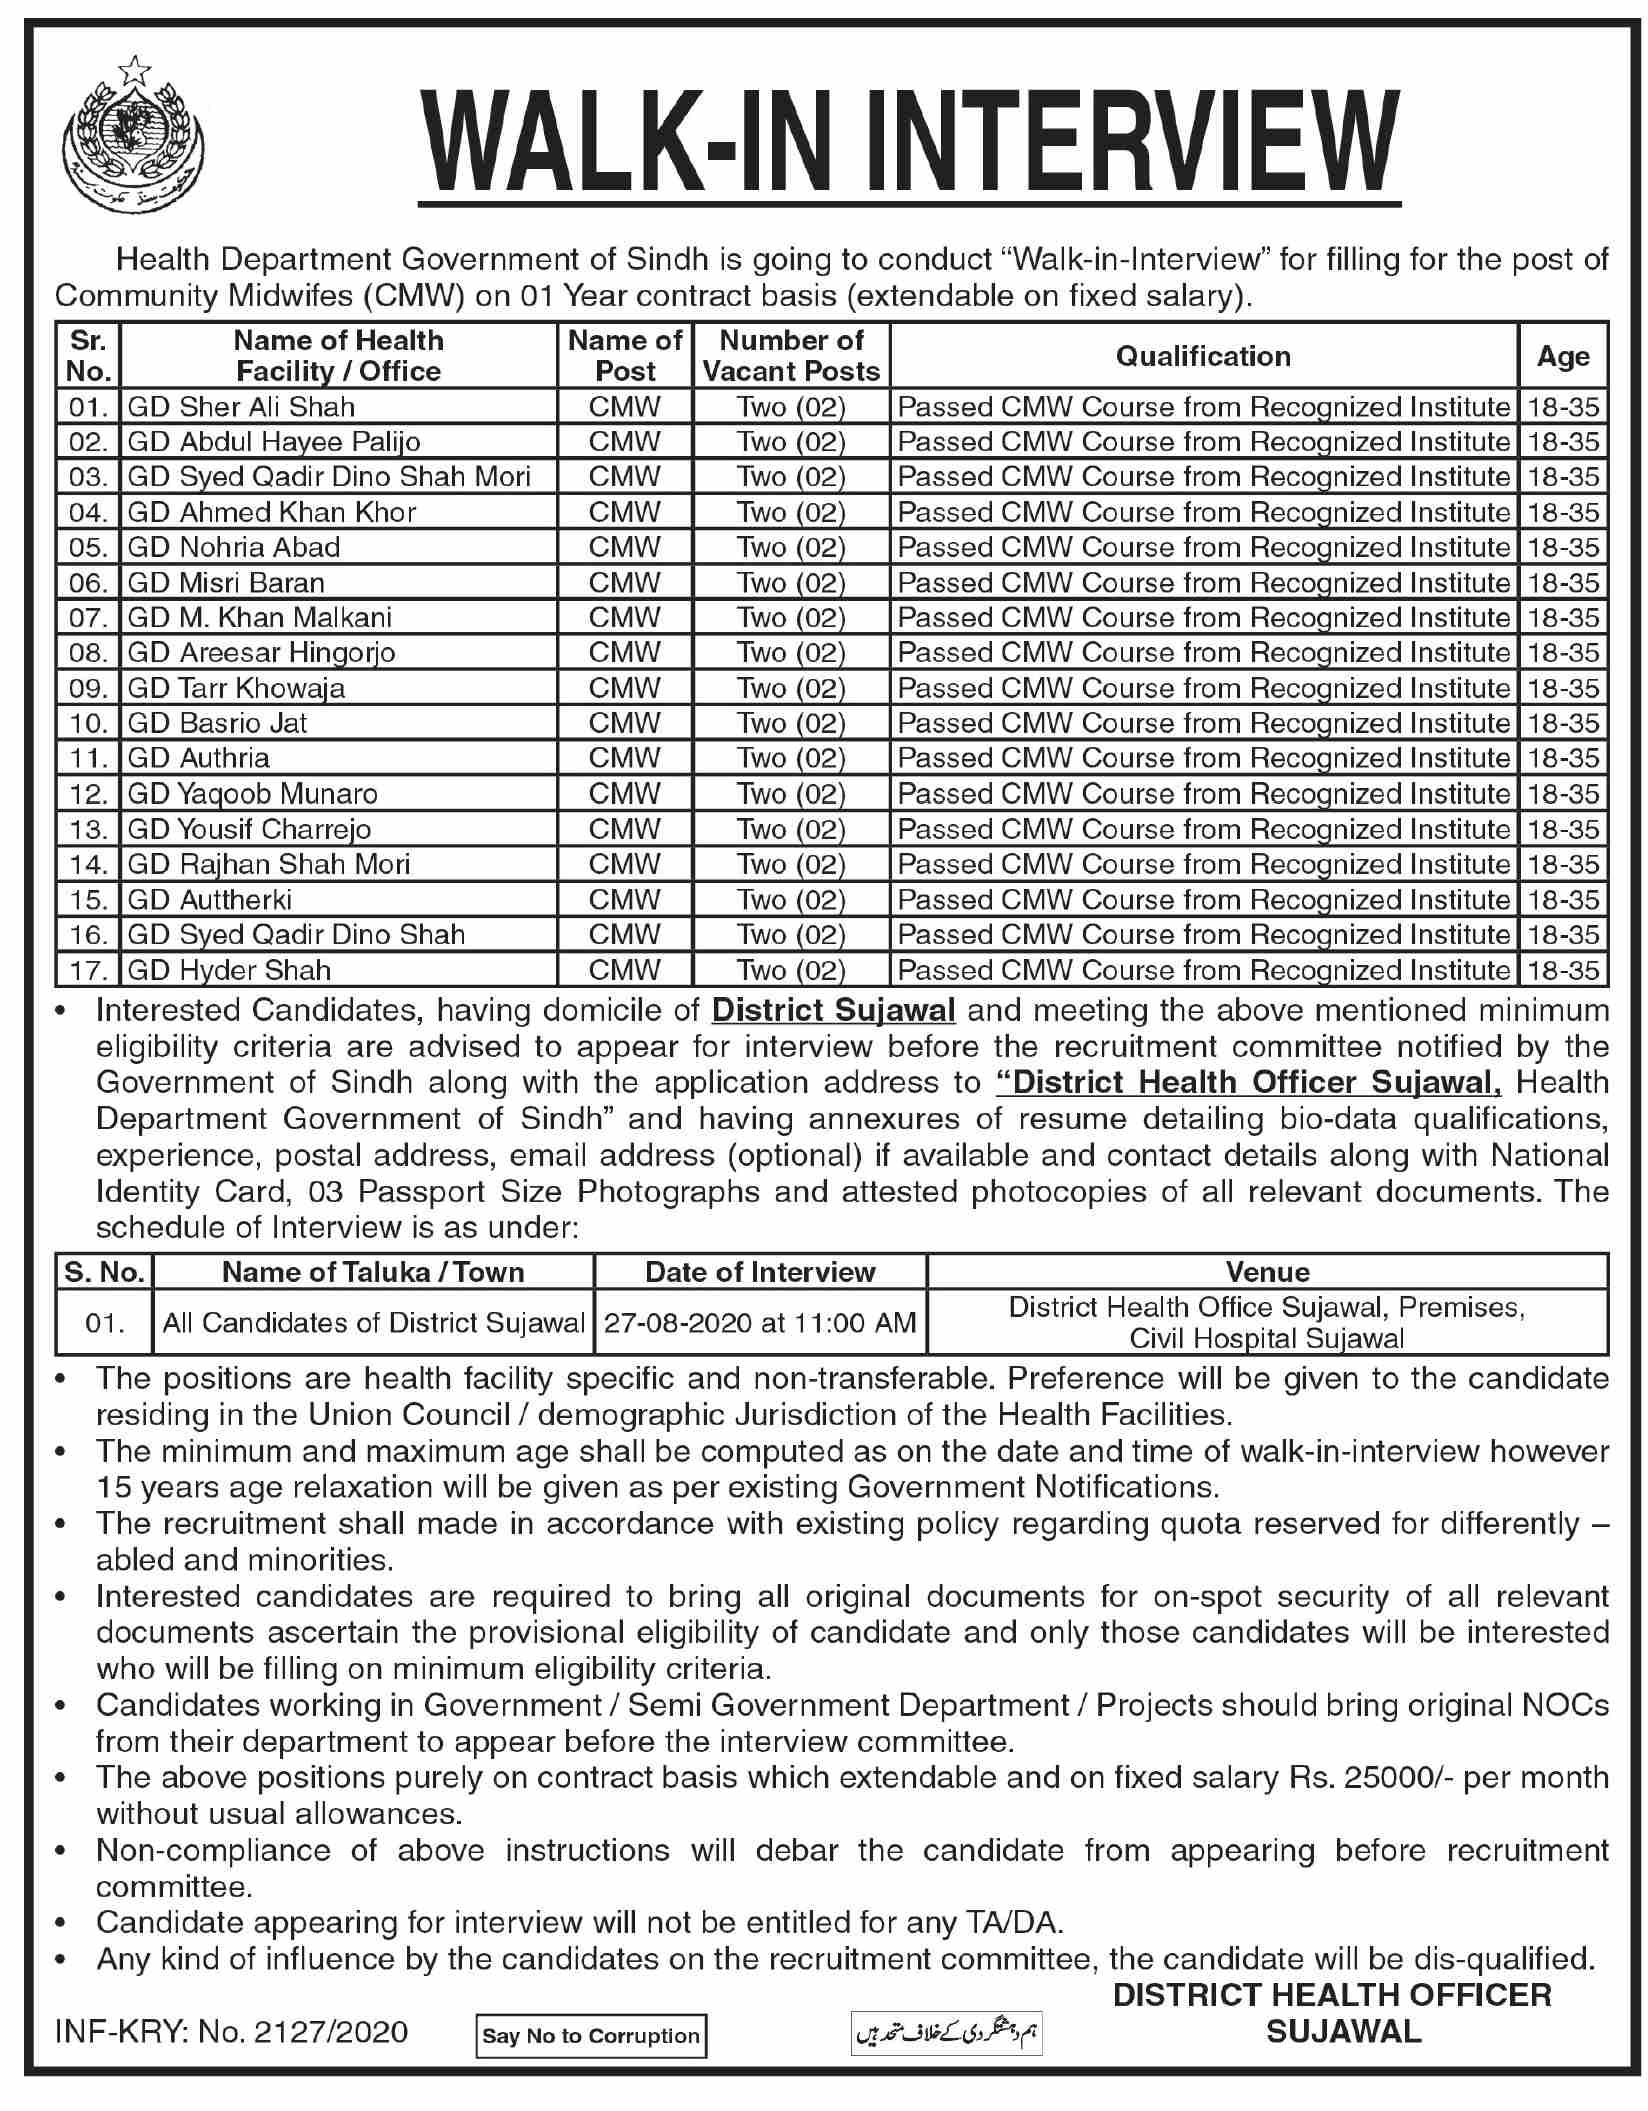 Health Department Government of Sindh Jobs August 2020